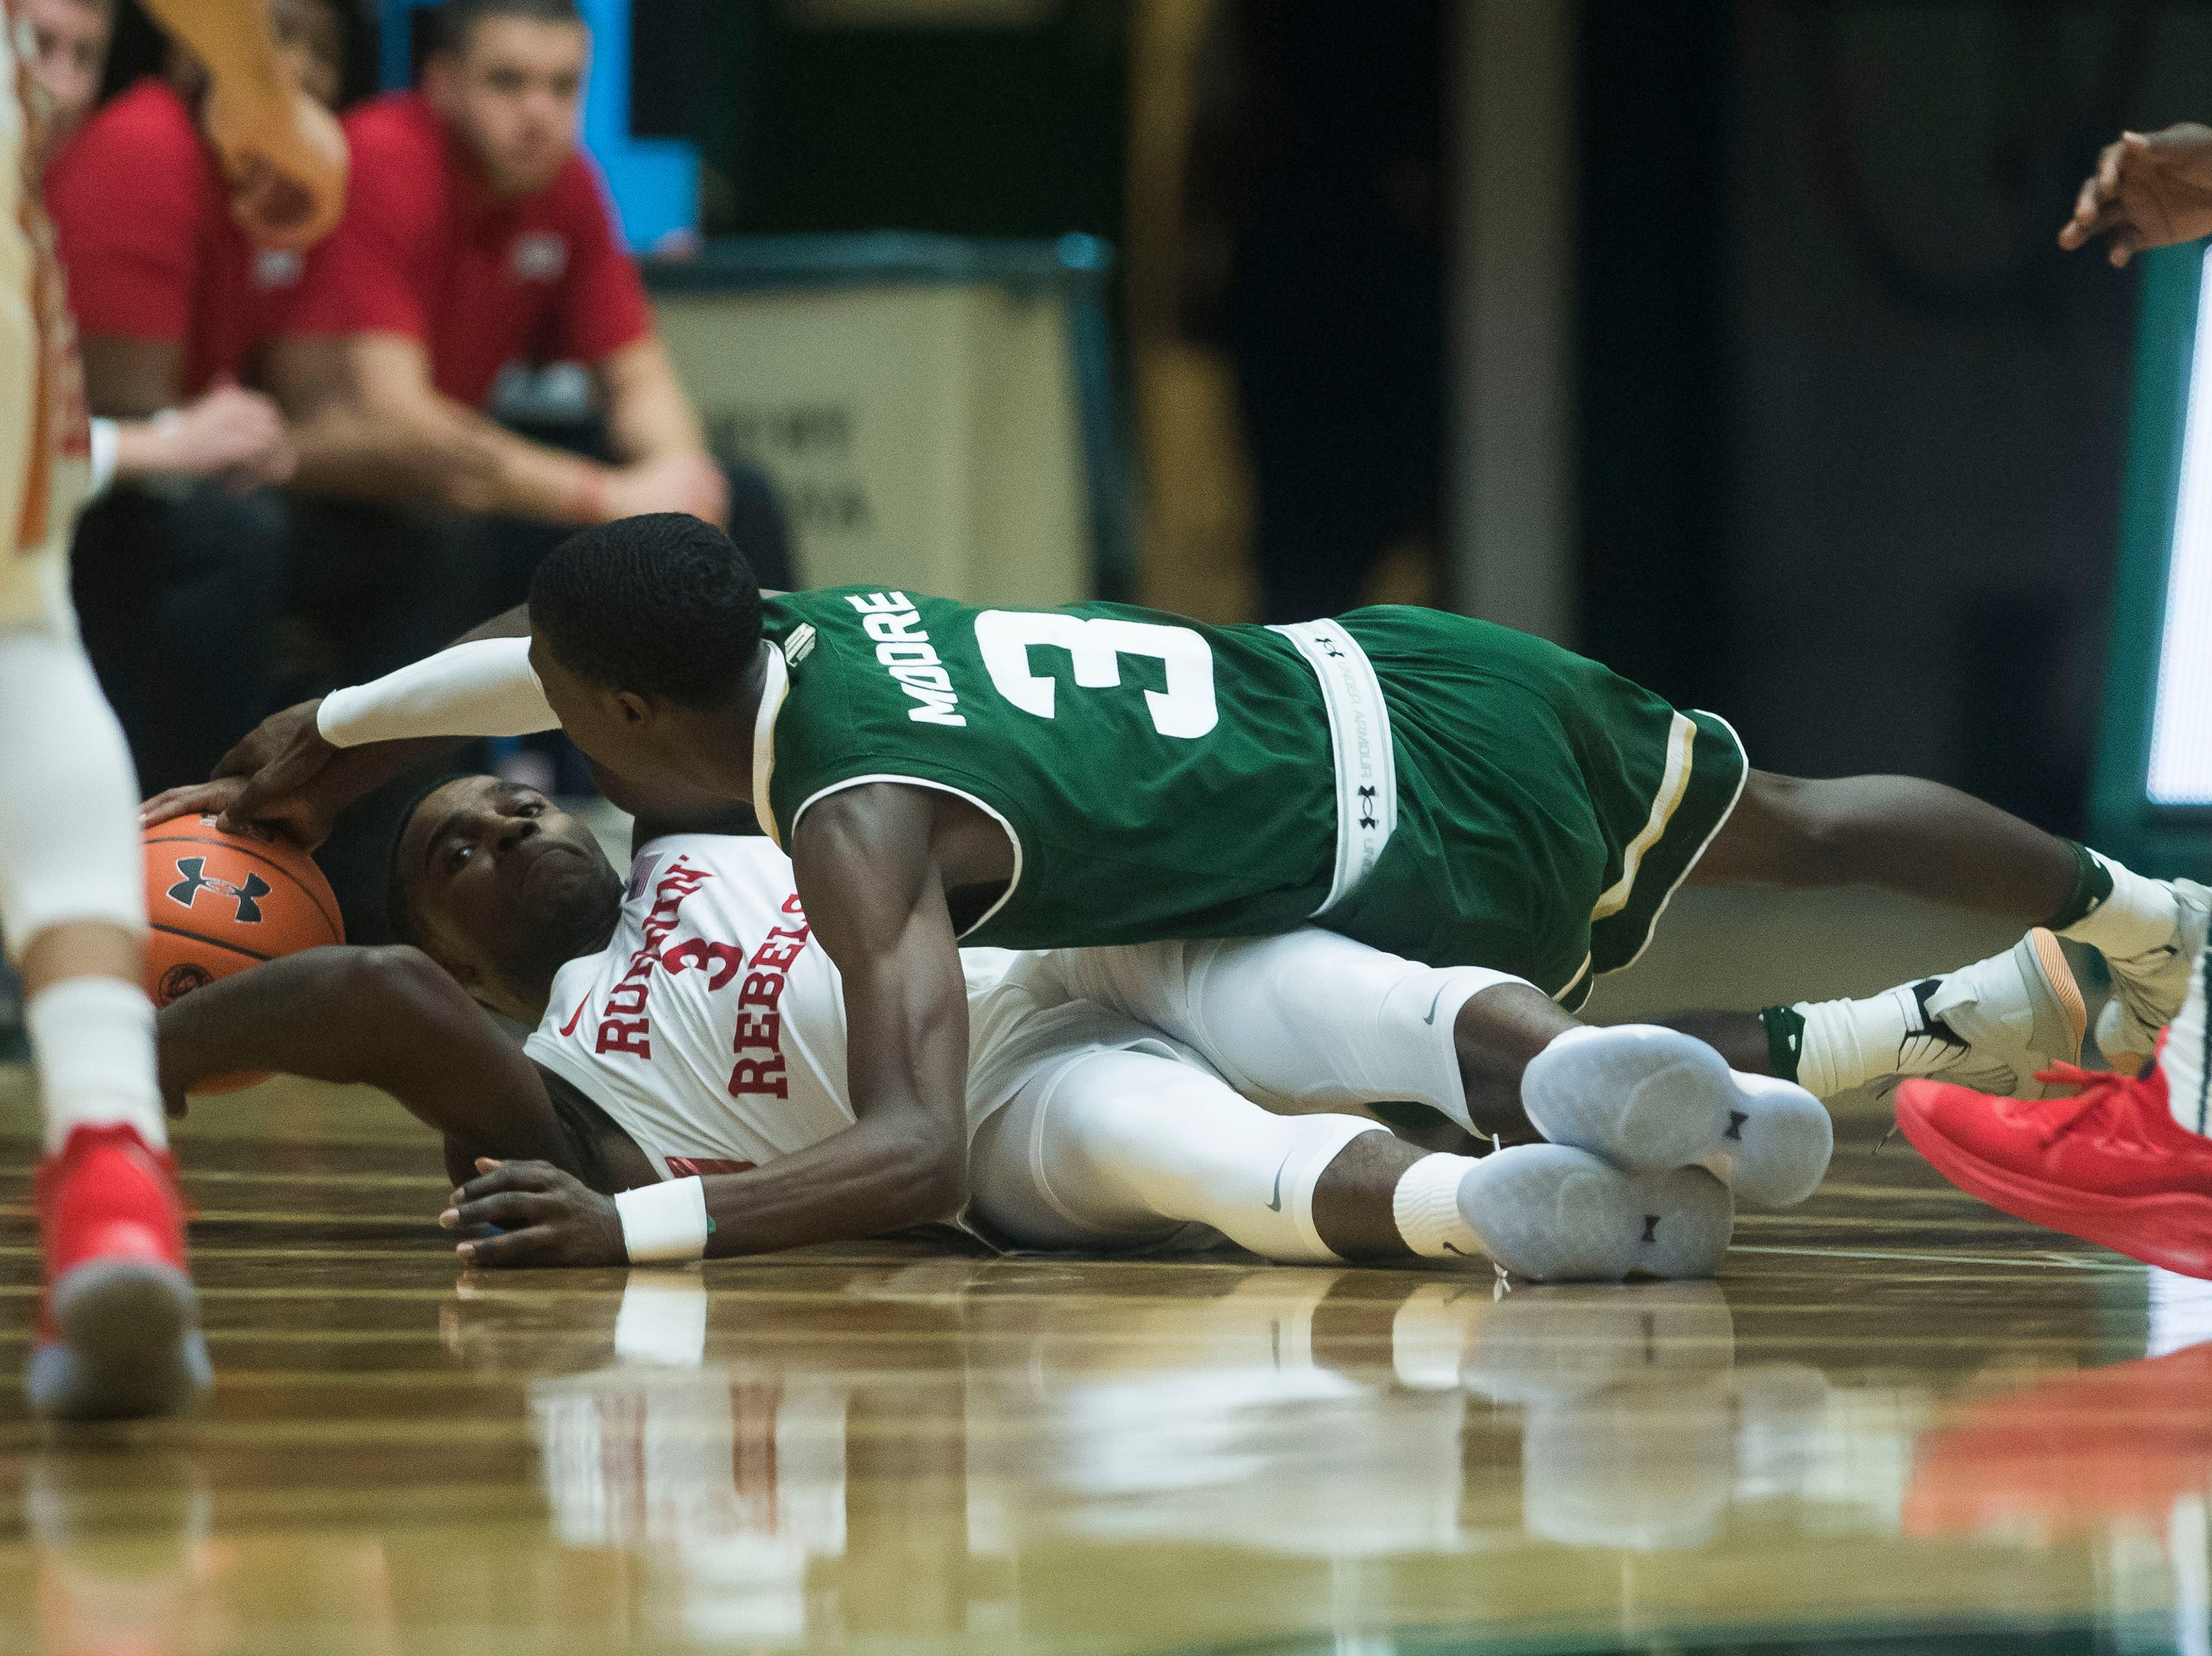 Colorado State University freshman guard Kendle Moore (3) attempts to get a loose ball from University of Nevada Las Vegas sophomore guard Amauri Hardy (3) on Saturday, March 9, 2019, at Moby Arena in Fort Collins, Colo.